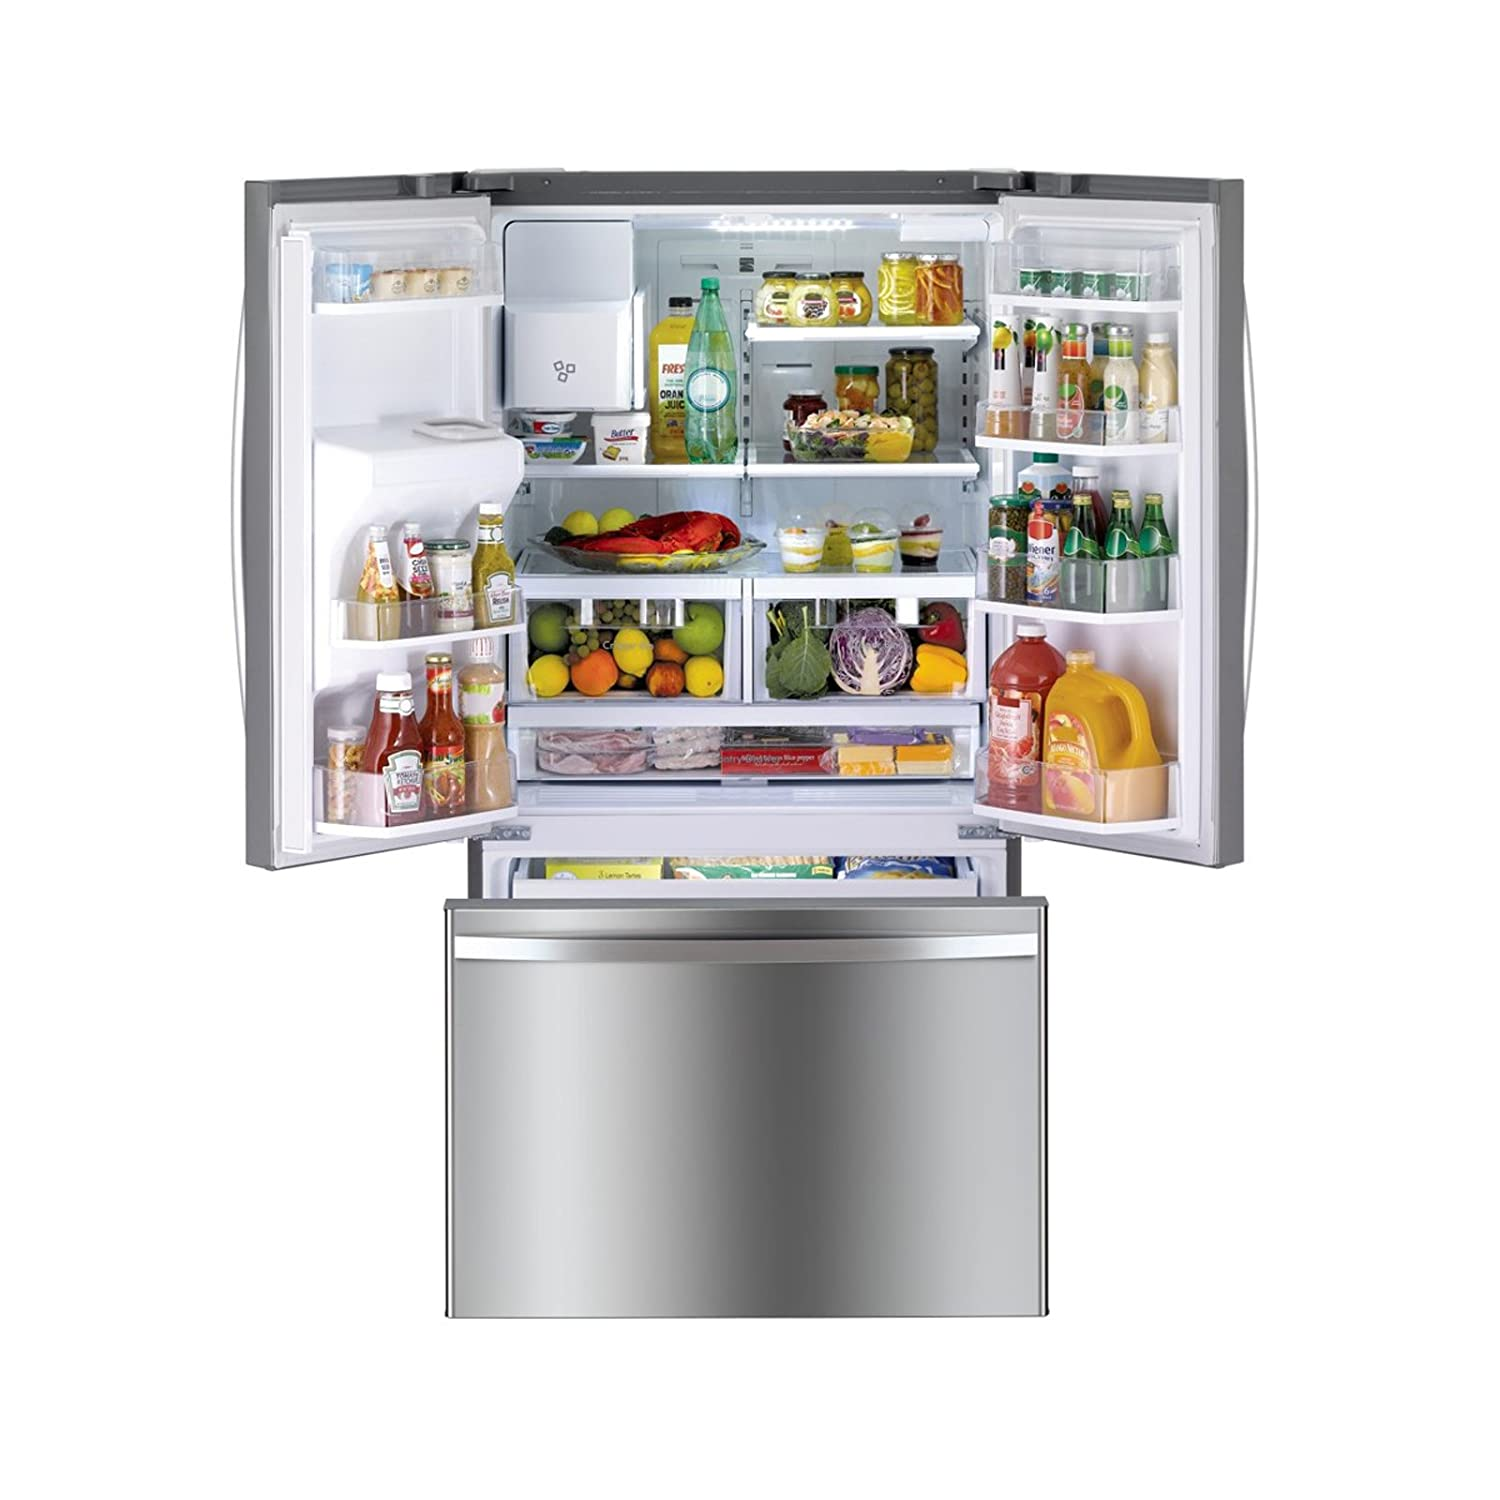 Amazon kenmore 73045 256 cuft french door refrigerator amazon kenmore 73045 256 cuft french door refrigerator with bottom freezer includes delivery and hookup available in select cities only rubansaba